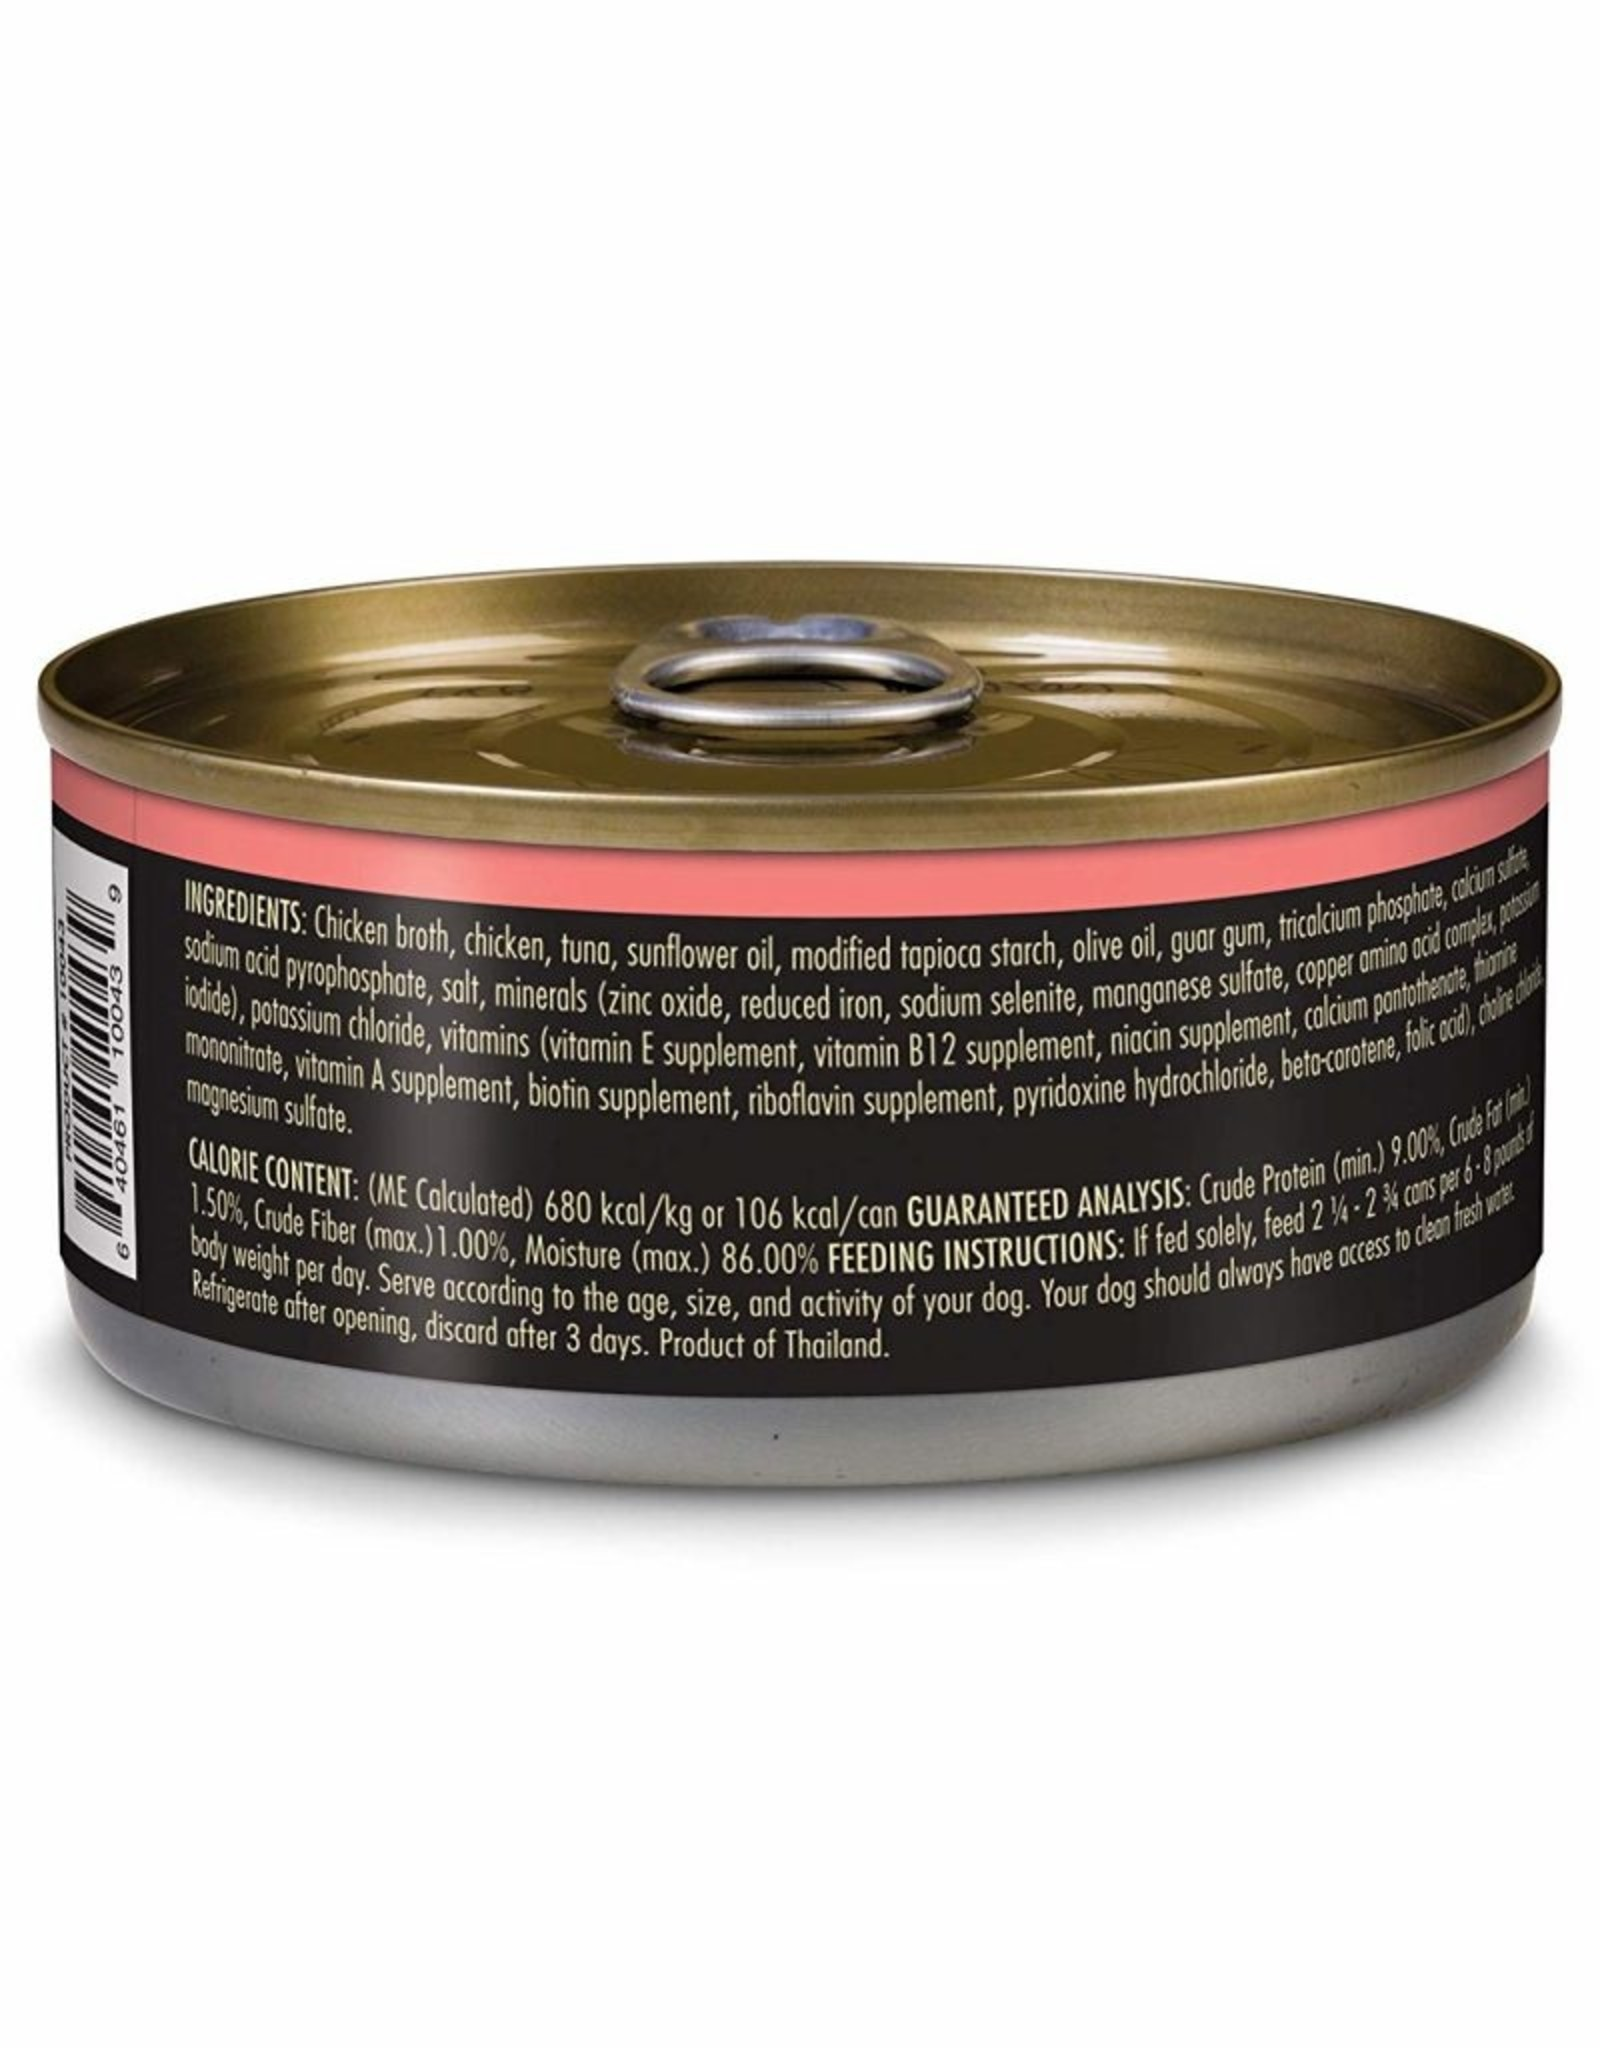 CANIDAE PET FOODS CANIDAE CAN DOG SMALL BREED CHICKEN, TUNA IN GRAVY 5.5OZ CASE OF 24